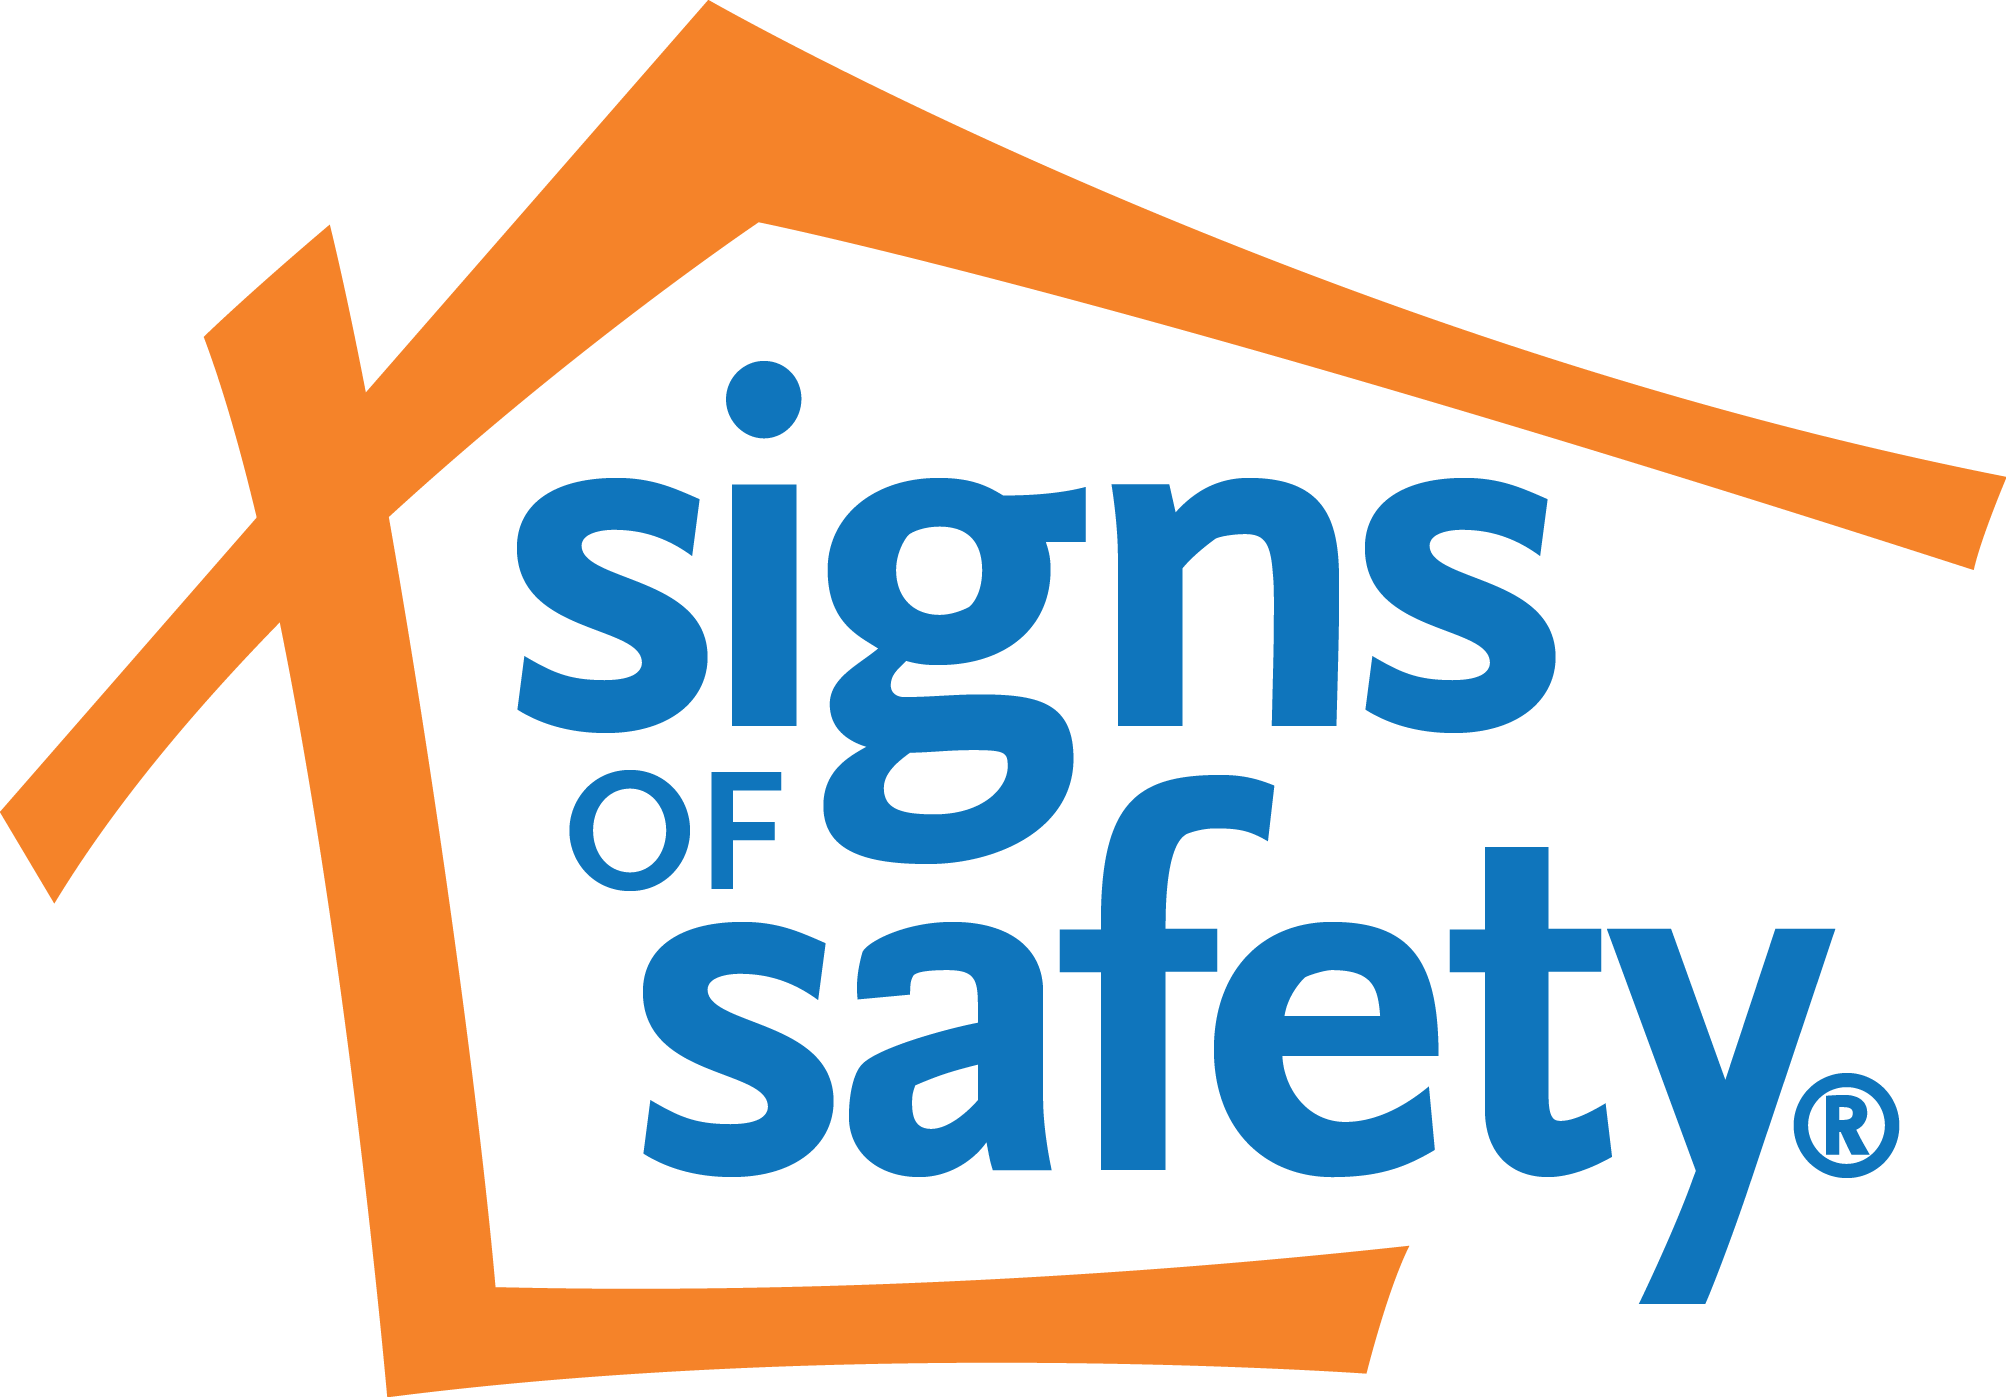 Signs of Safety Logo